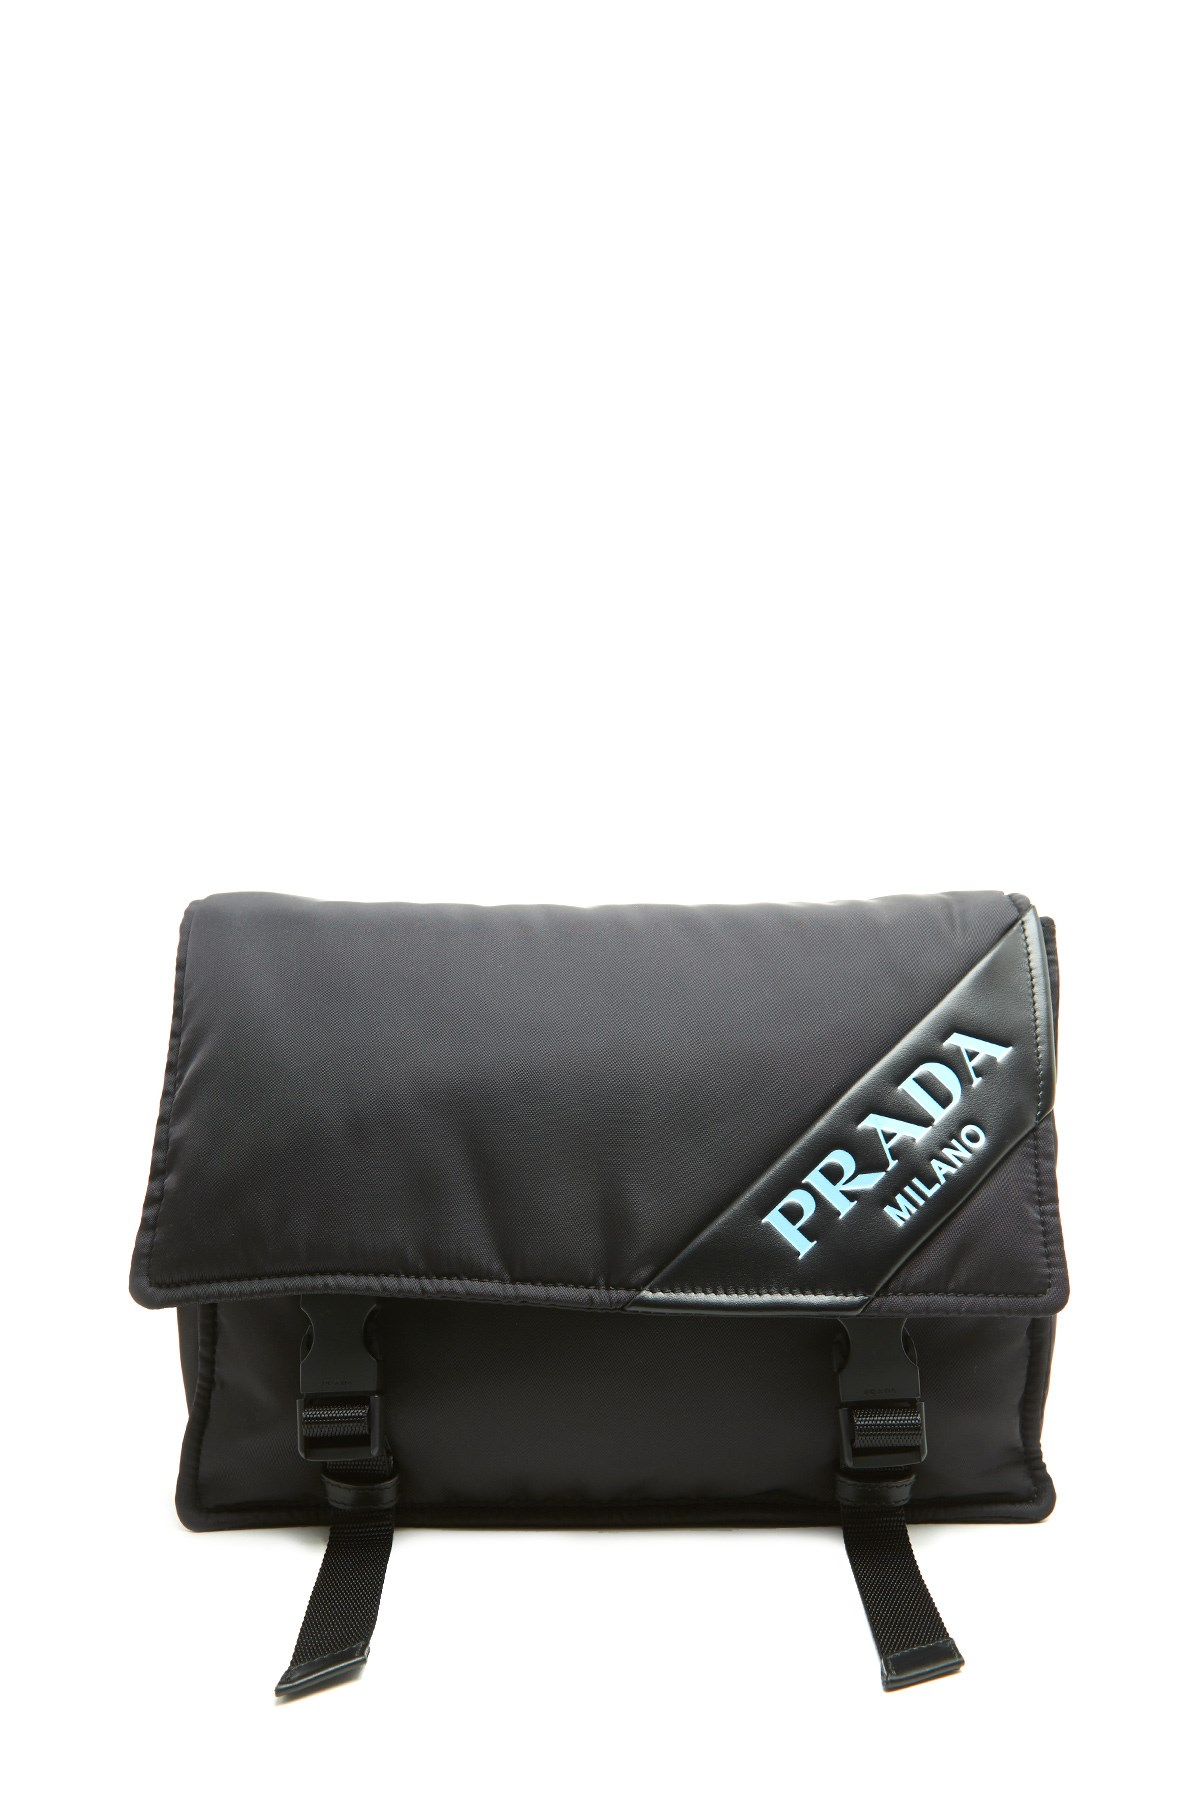 1cd4a1b46852 coupon code for prada messenger 2018 x3 17287 5c7d1